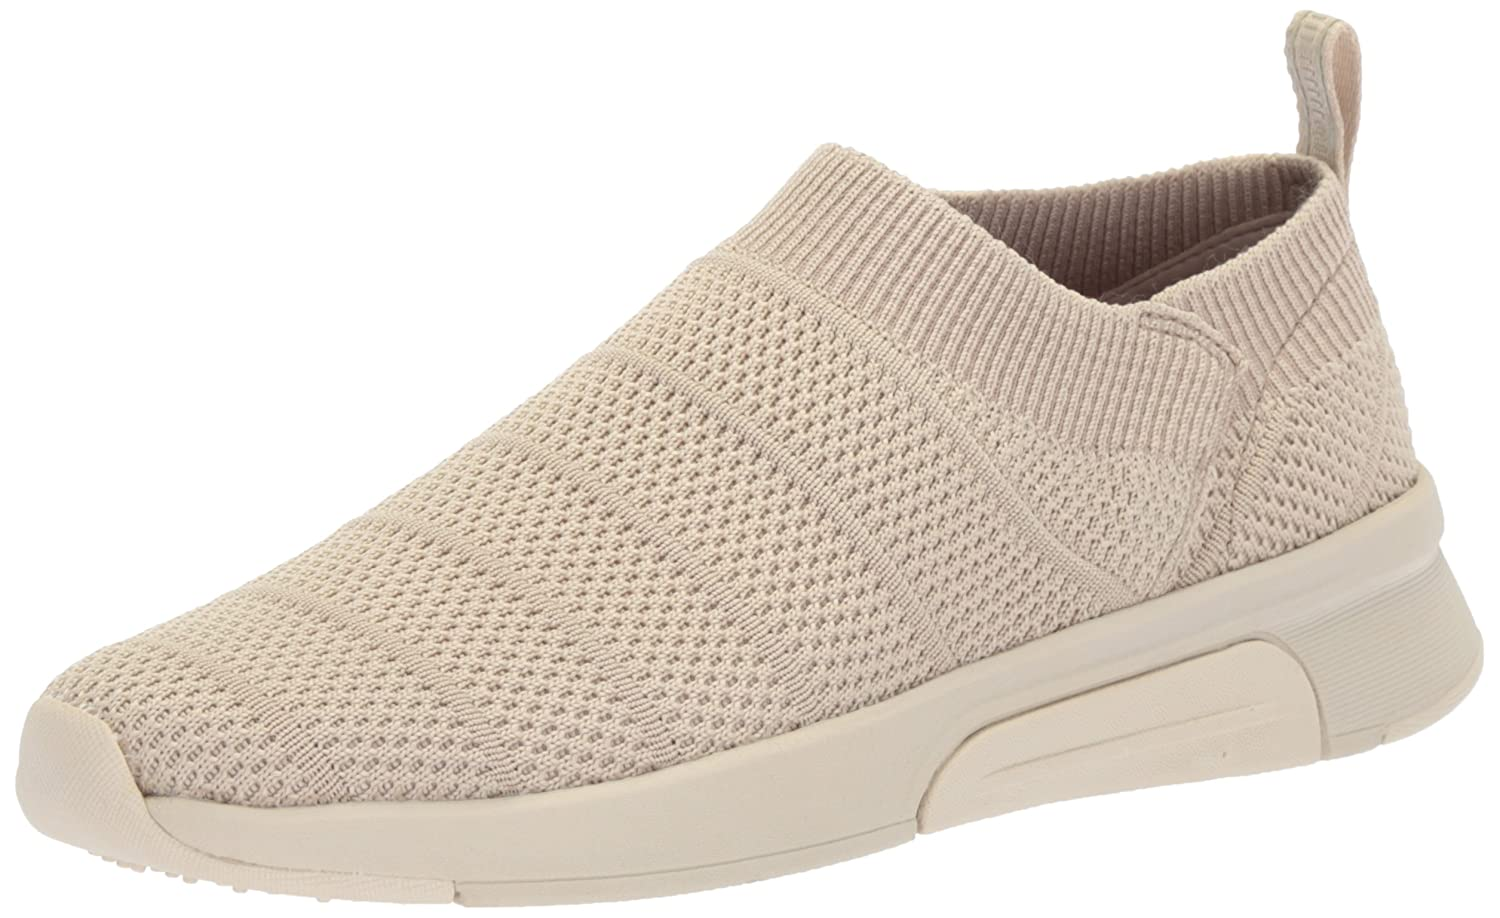 Mark Nason Los Angeles Women's Frisco Sneaker B074BHDT38 5 B(M) US|Natural